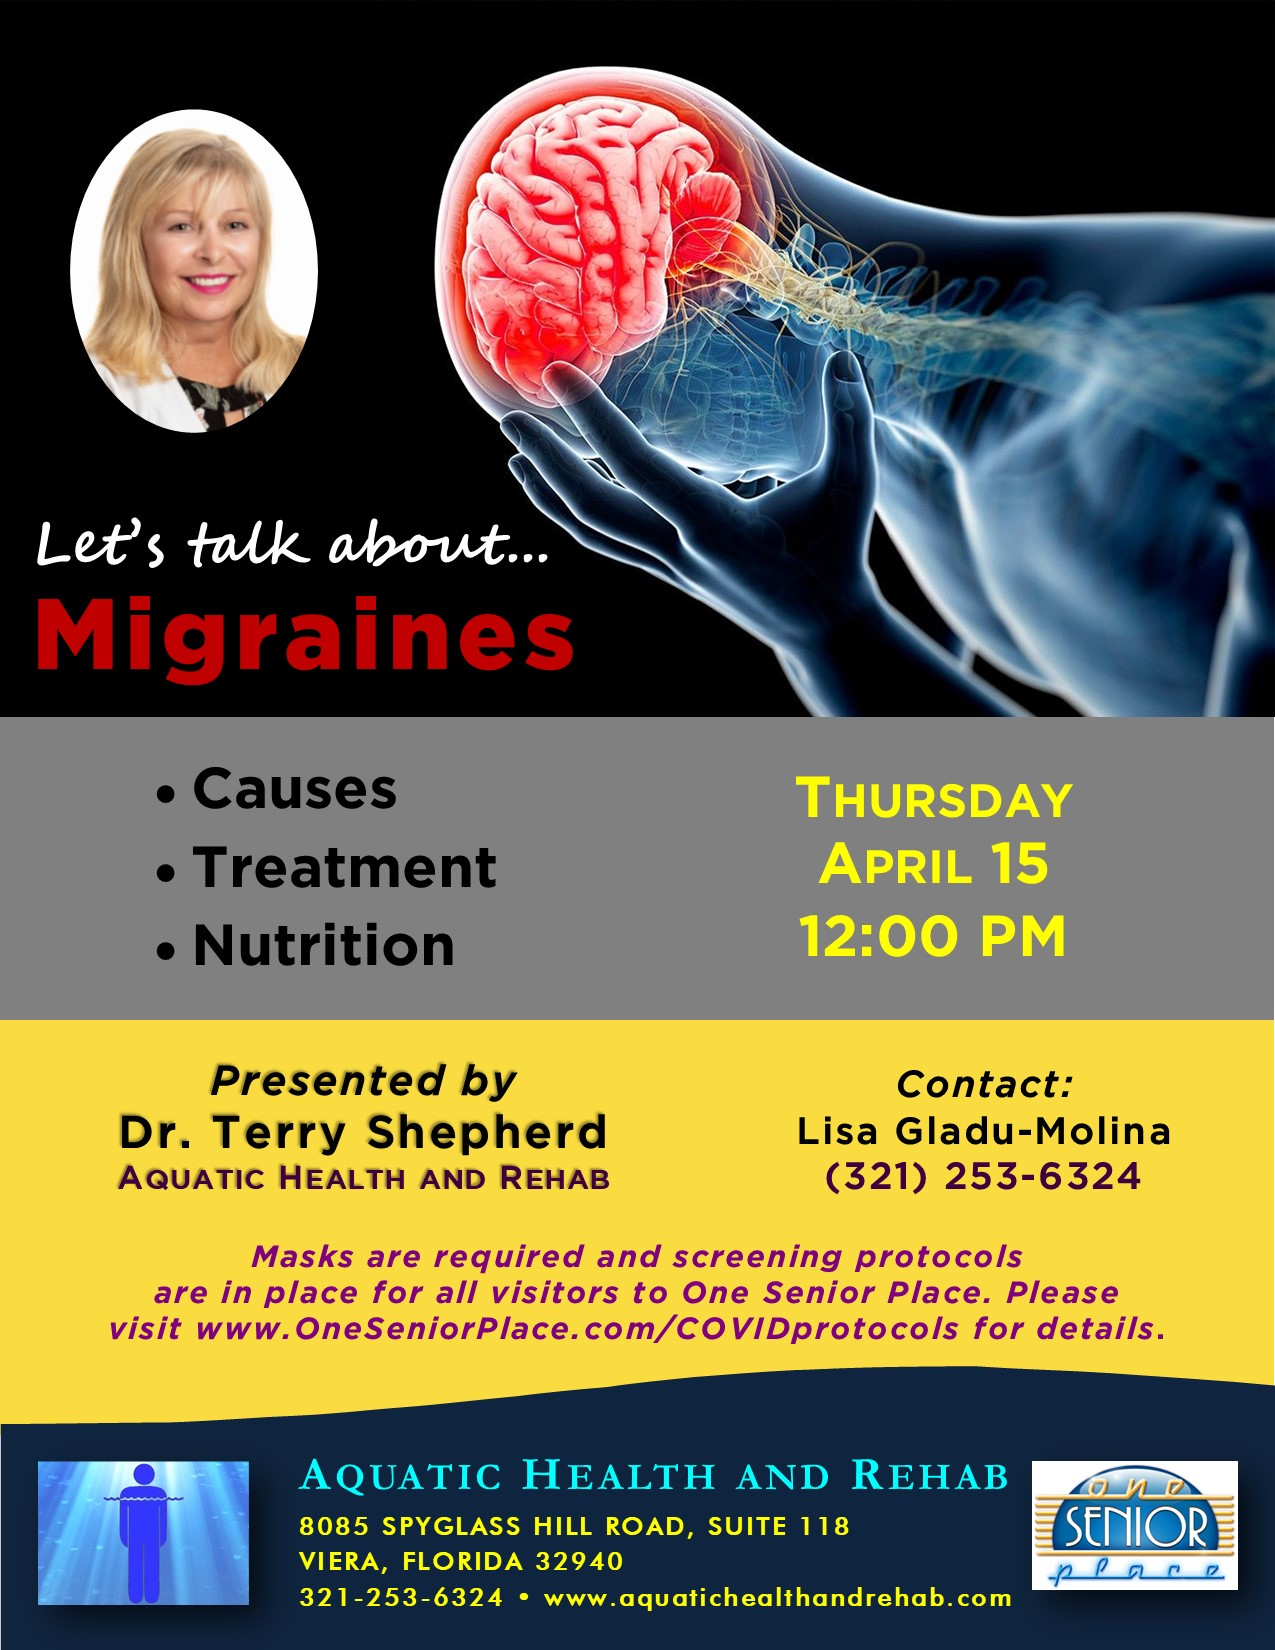 Let's talk about...Migraines presented by Aquatic Health and Rehab